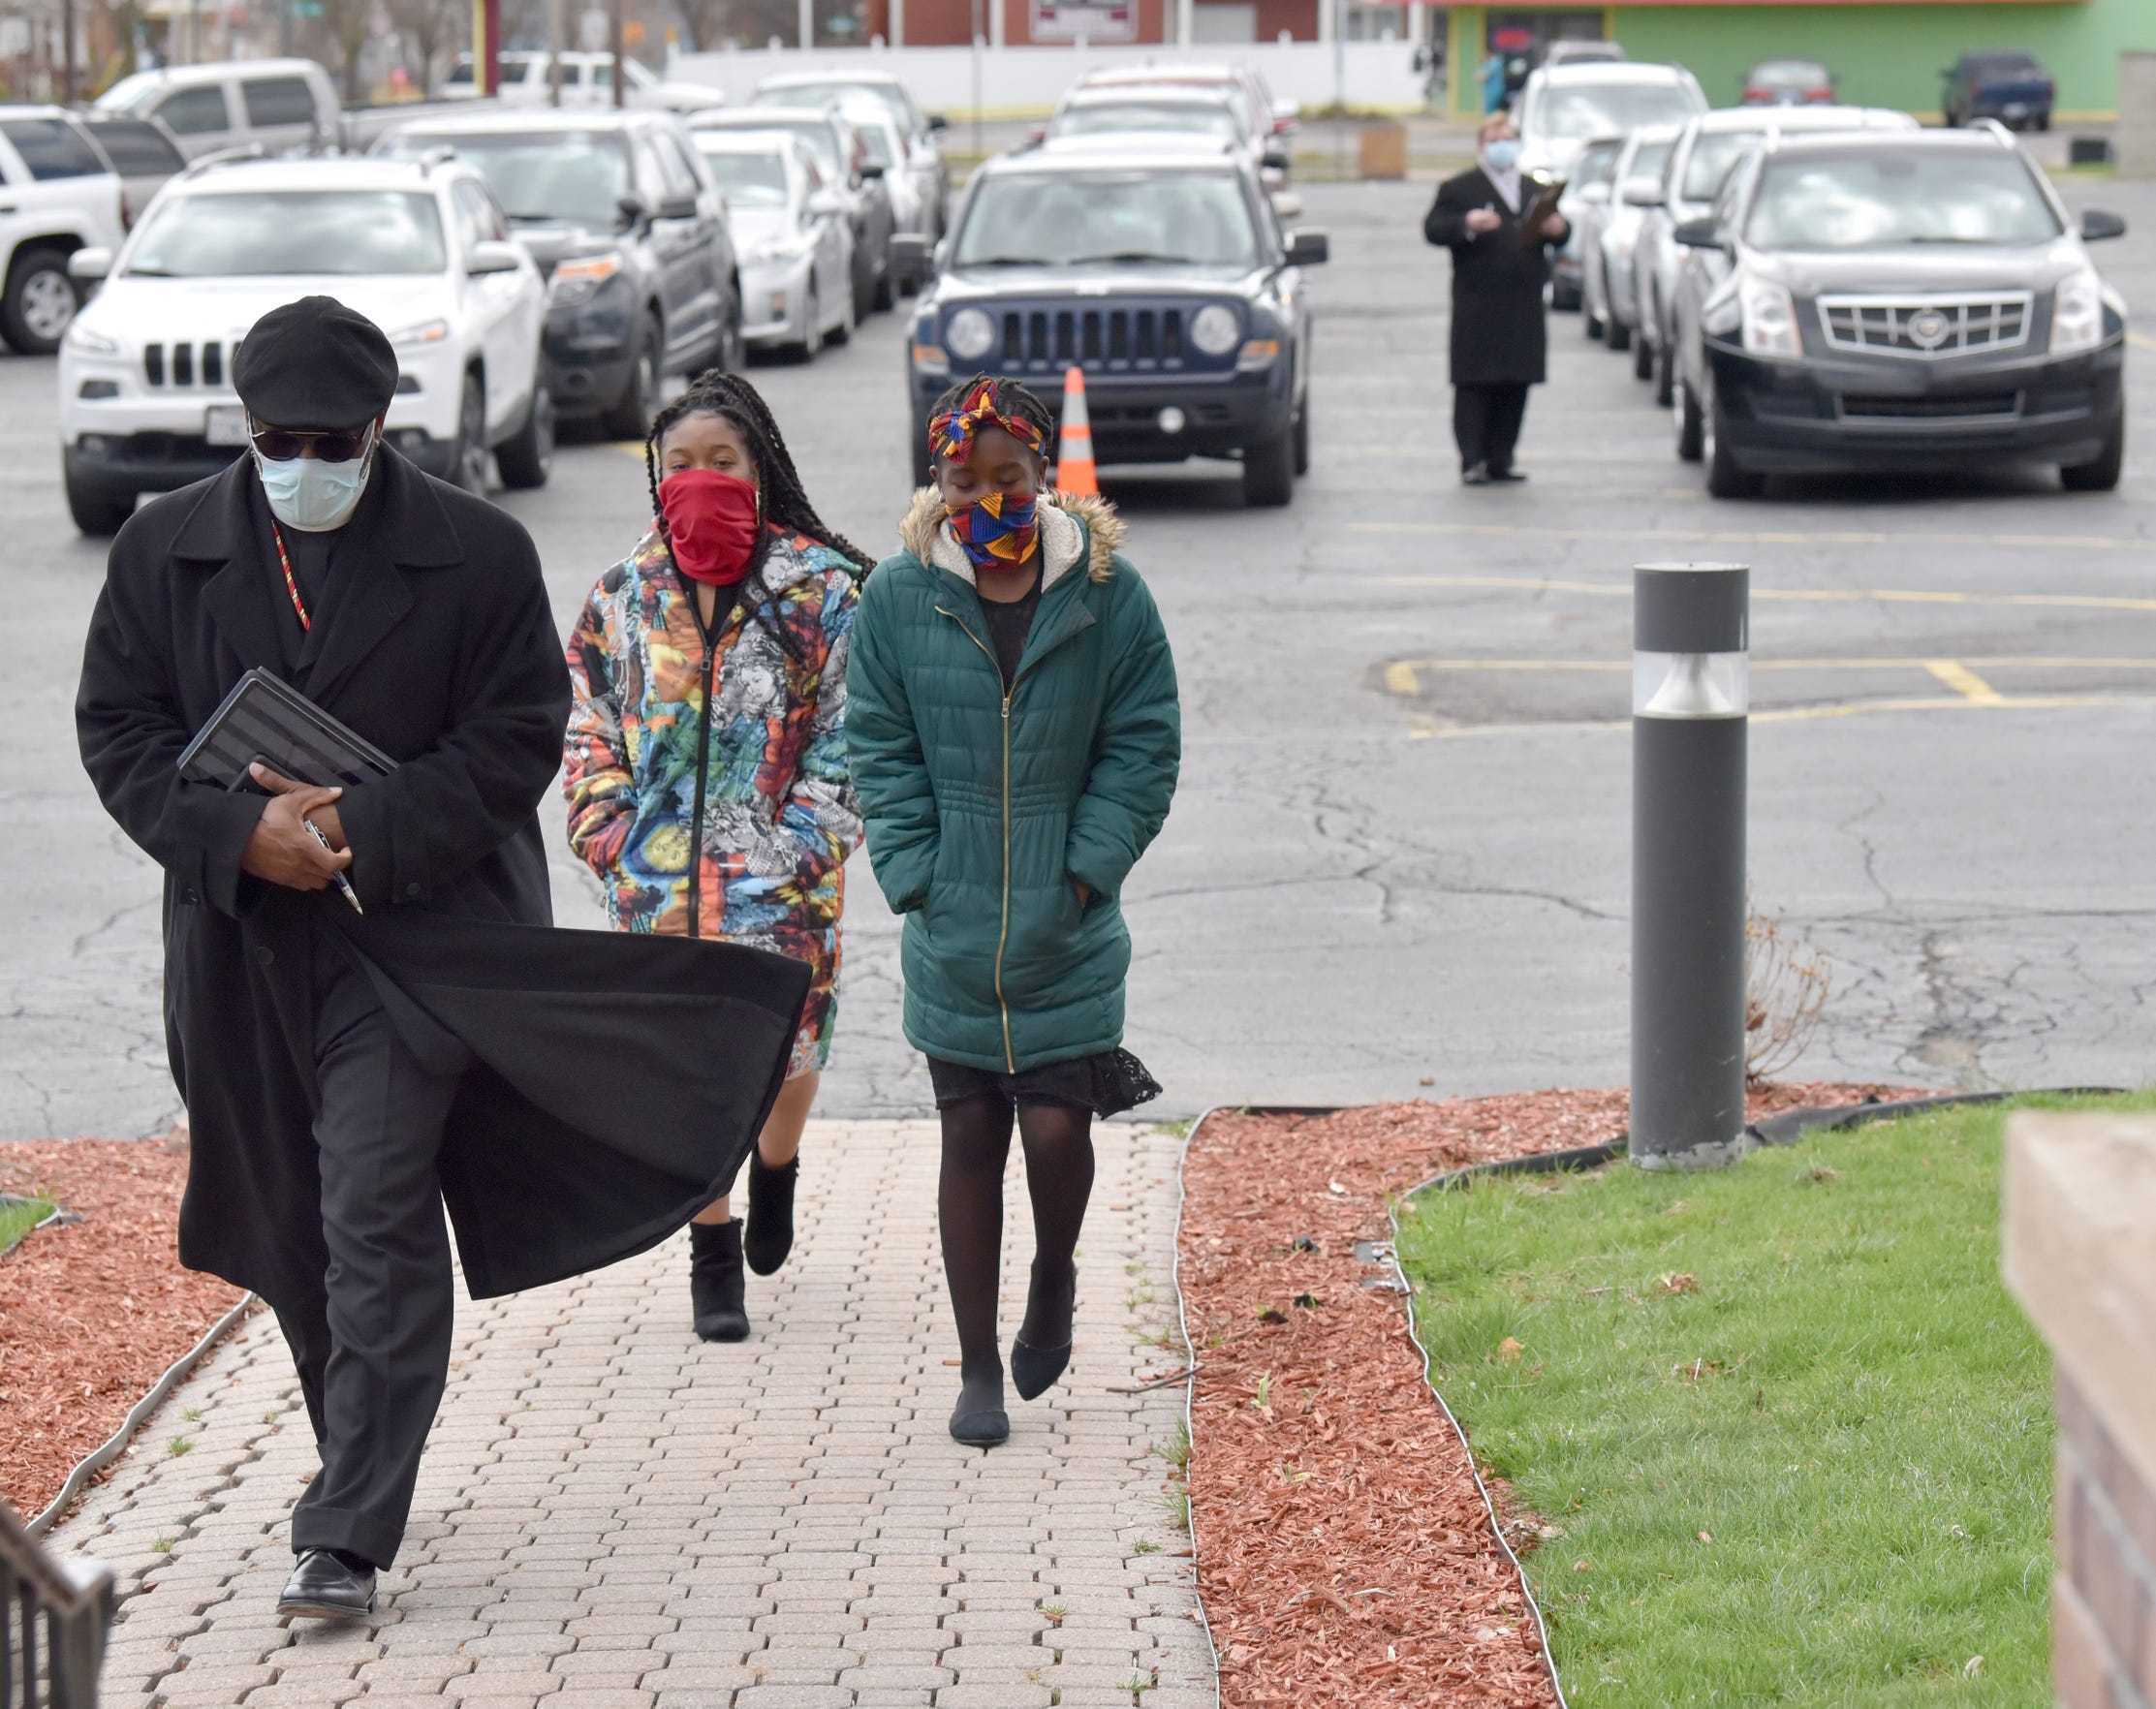 Jackson Memorial Temple Church of God in Christ Pastor Kiemba Knowlin and his daughters Nehderi Knowlin, center, and Zhenya Knowlin, all of New Baltimore, enter the funeral home to pay respects as other invited guests wait in their cars for their turn.